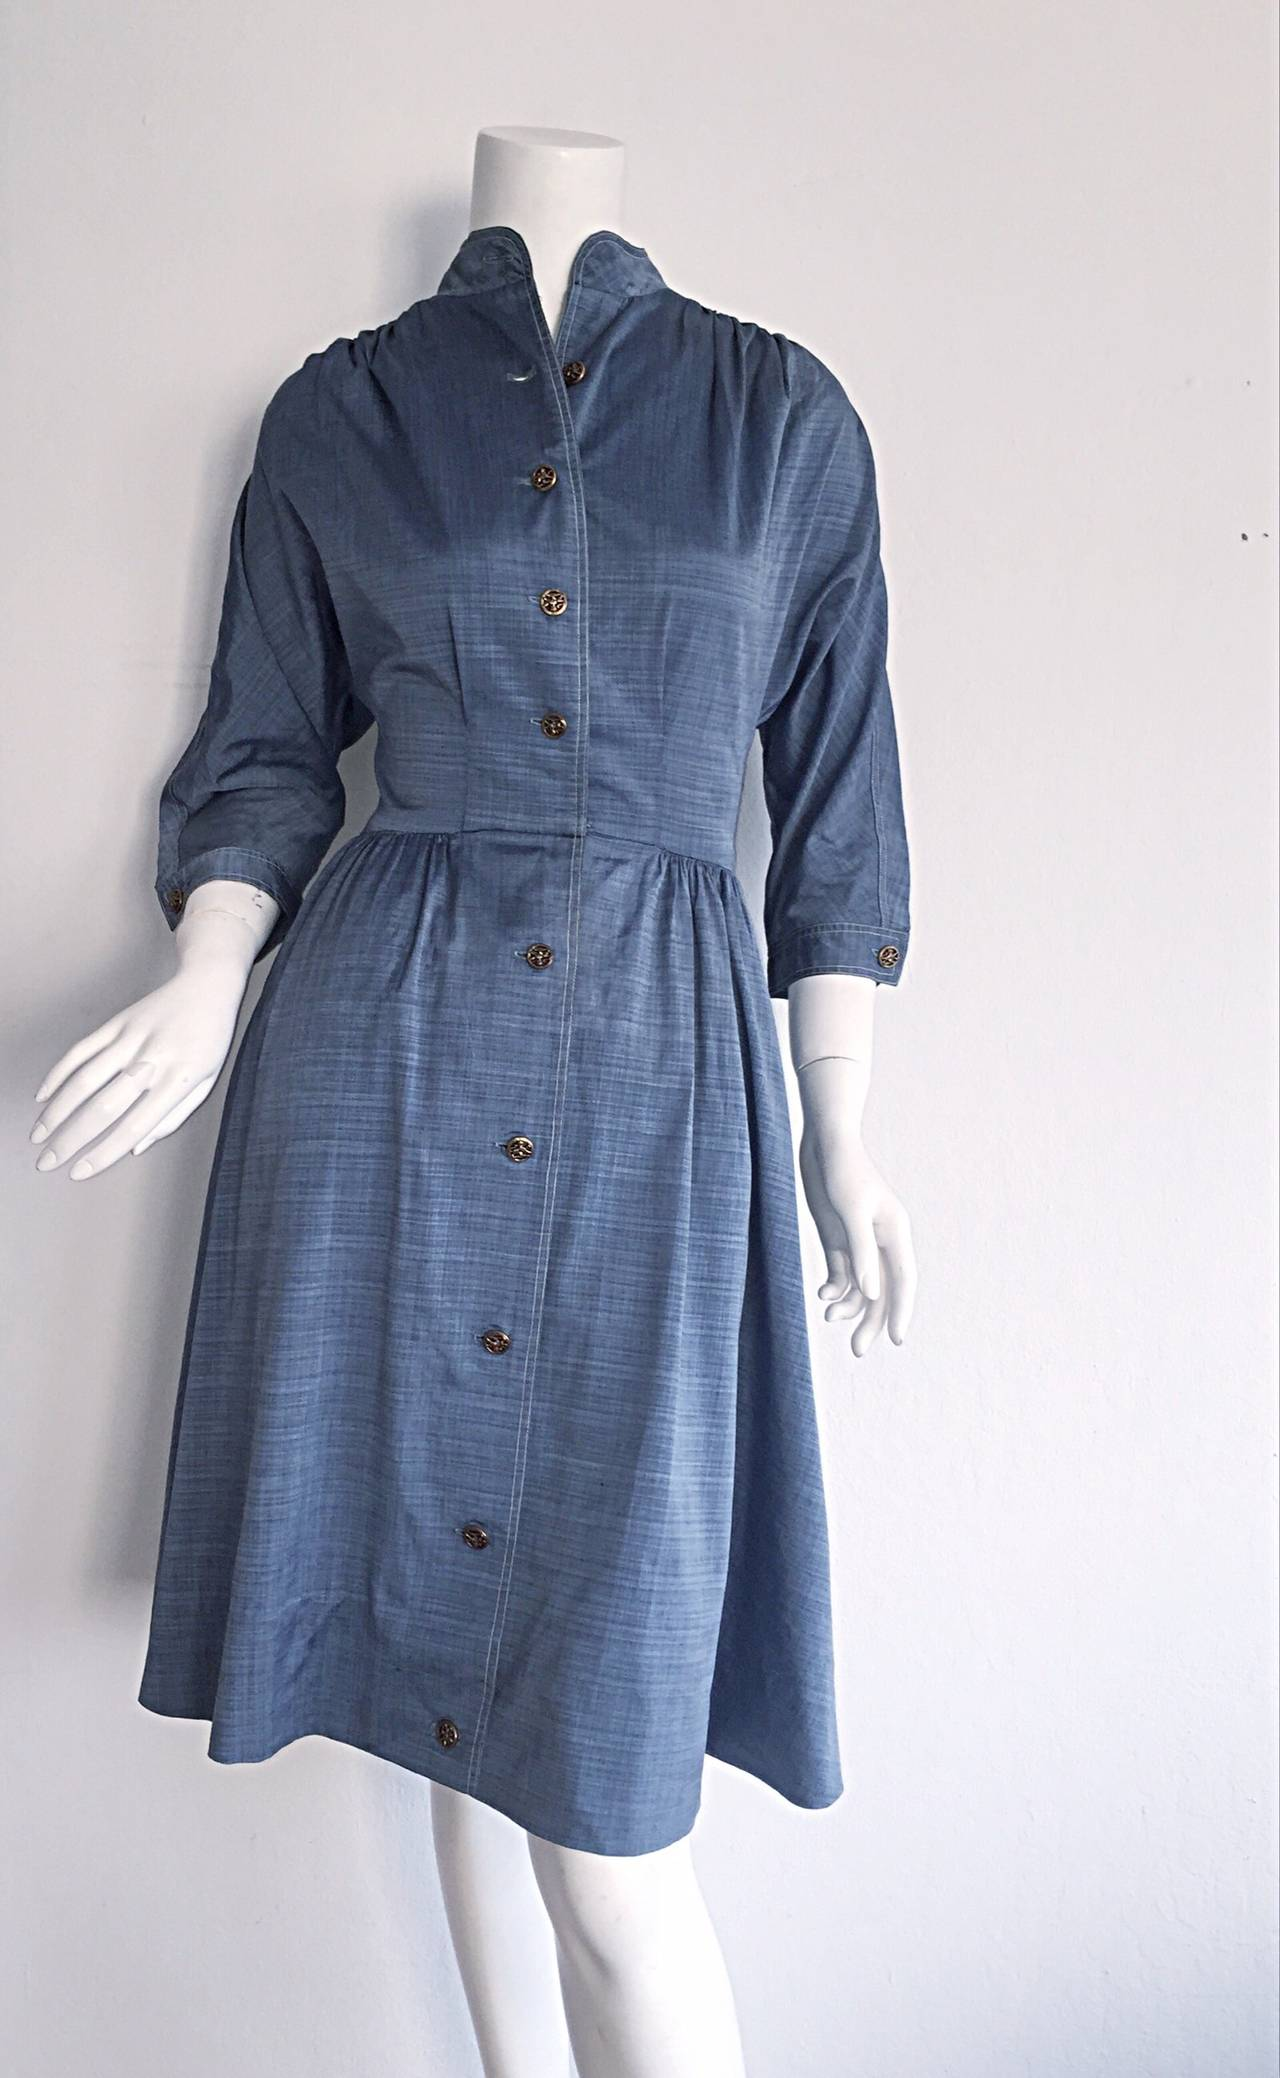 1940s Vintage B. Altman & Co. Denim Chambray Dress w/ Horse Buttons 4